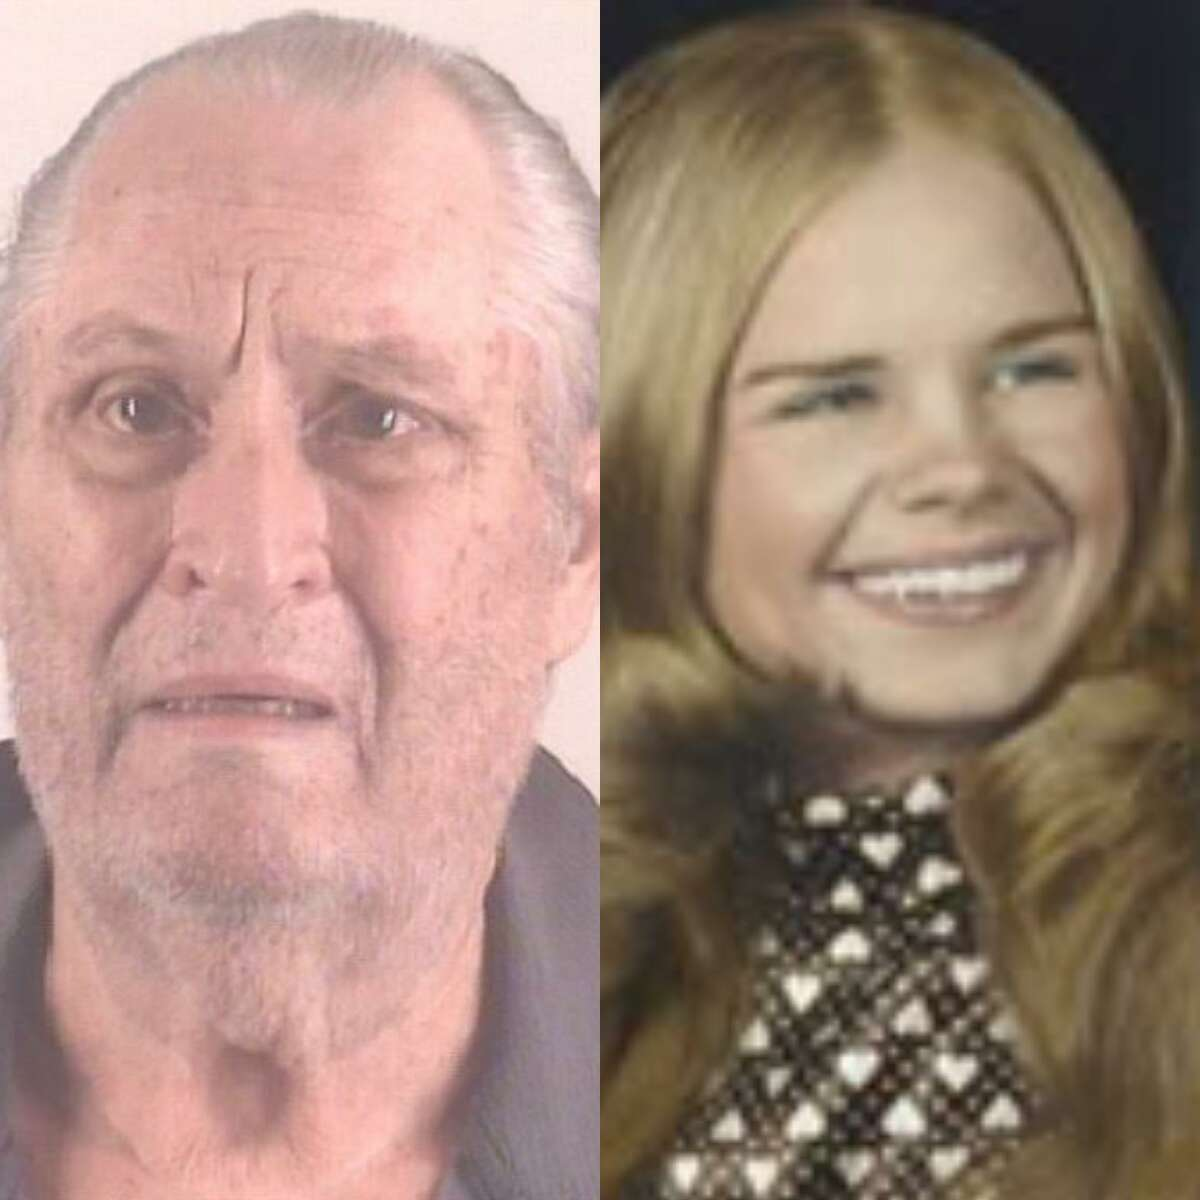 Glen Samuel McCurley, left, 77, of Fort Worth, is being charged with capital murder for the death of Carla Walker, right, 17, of Fort Worth.